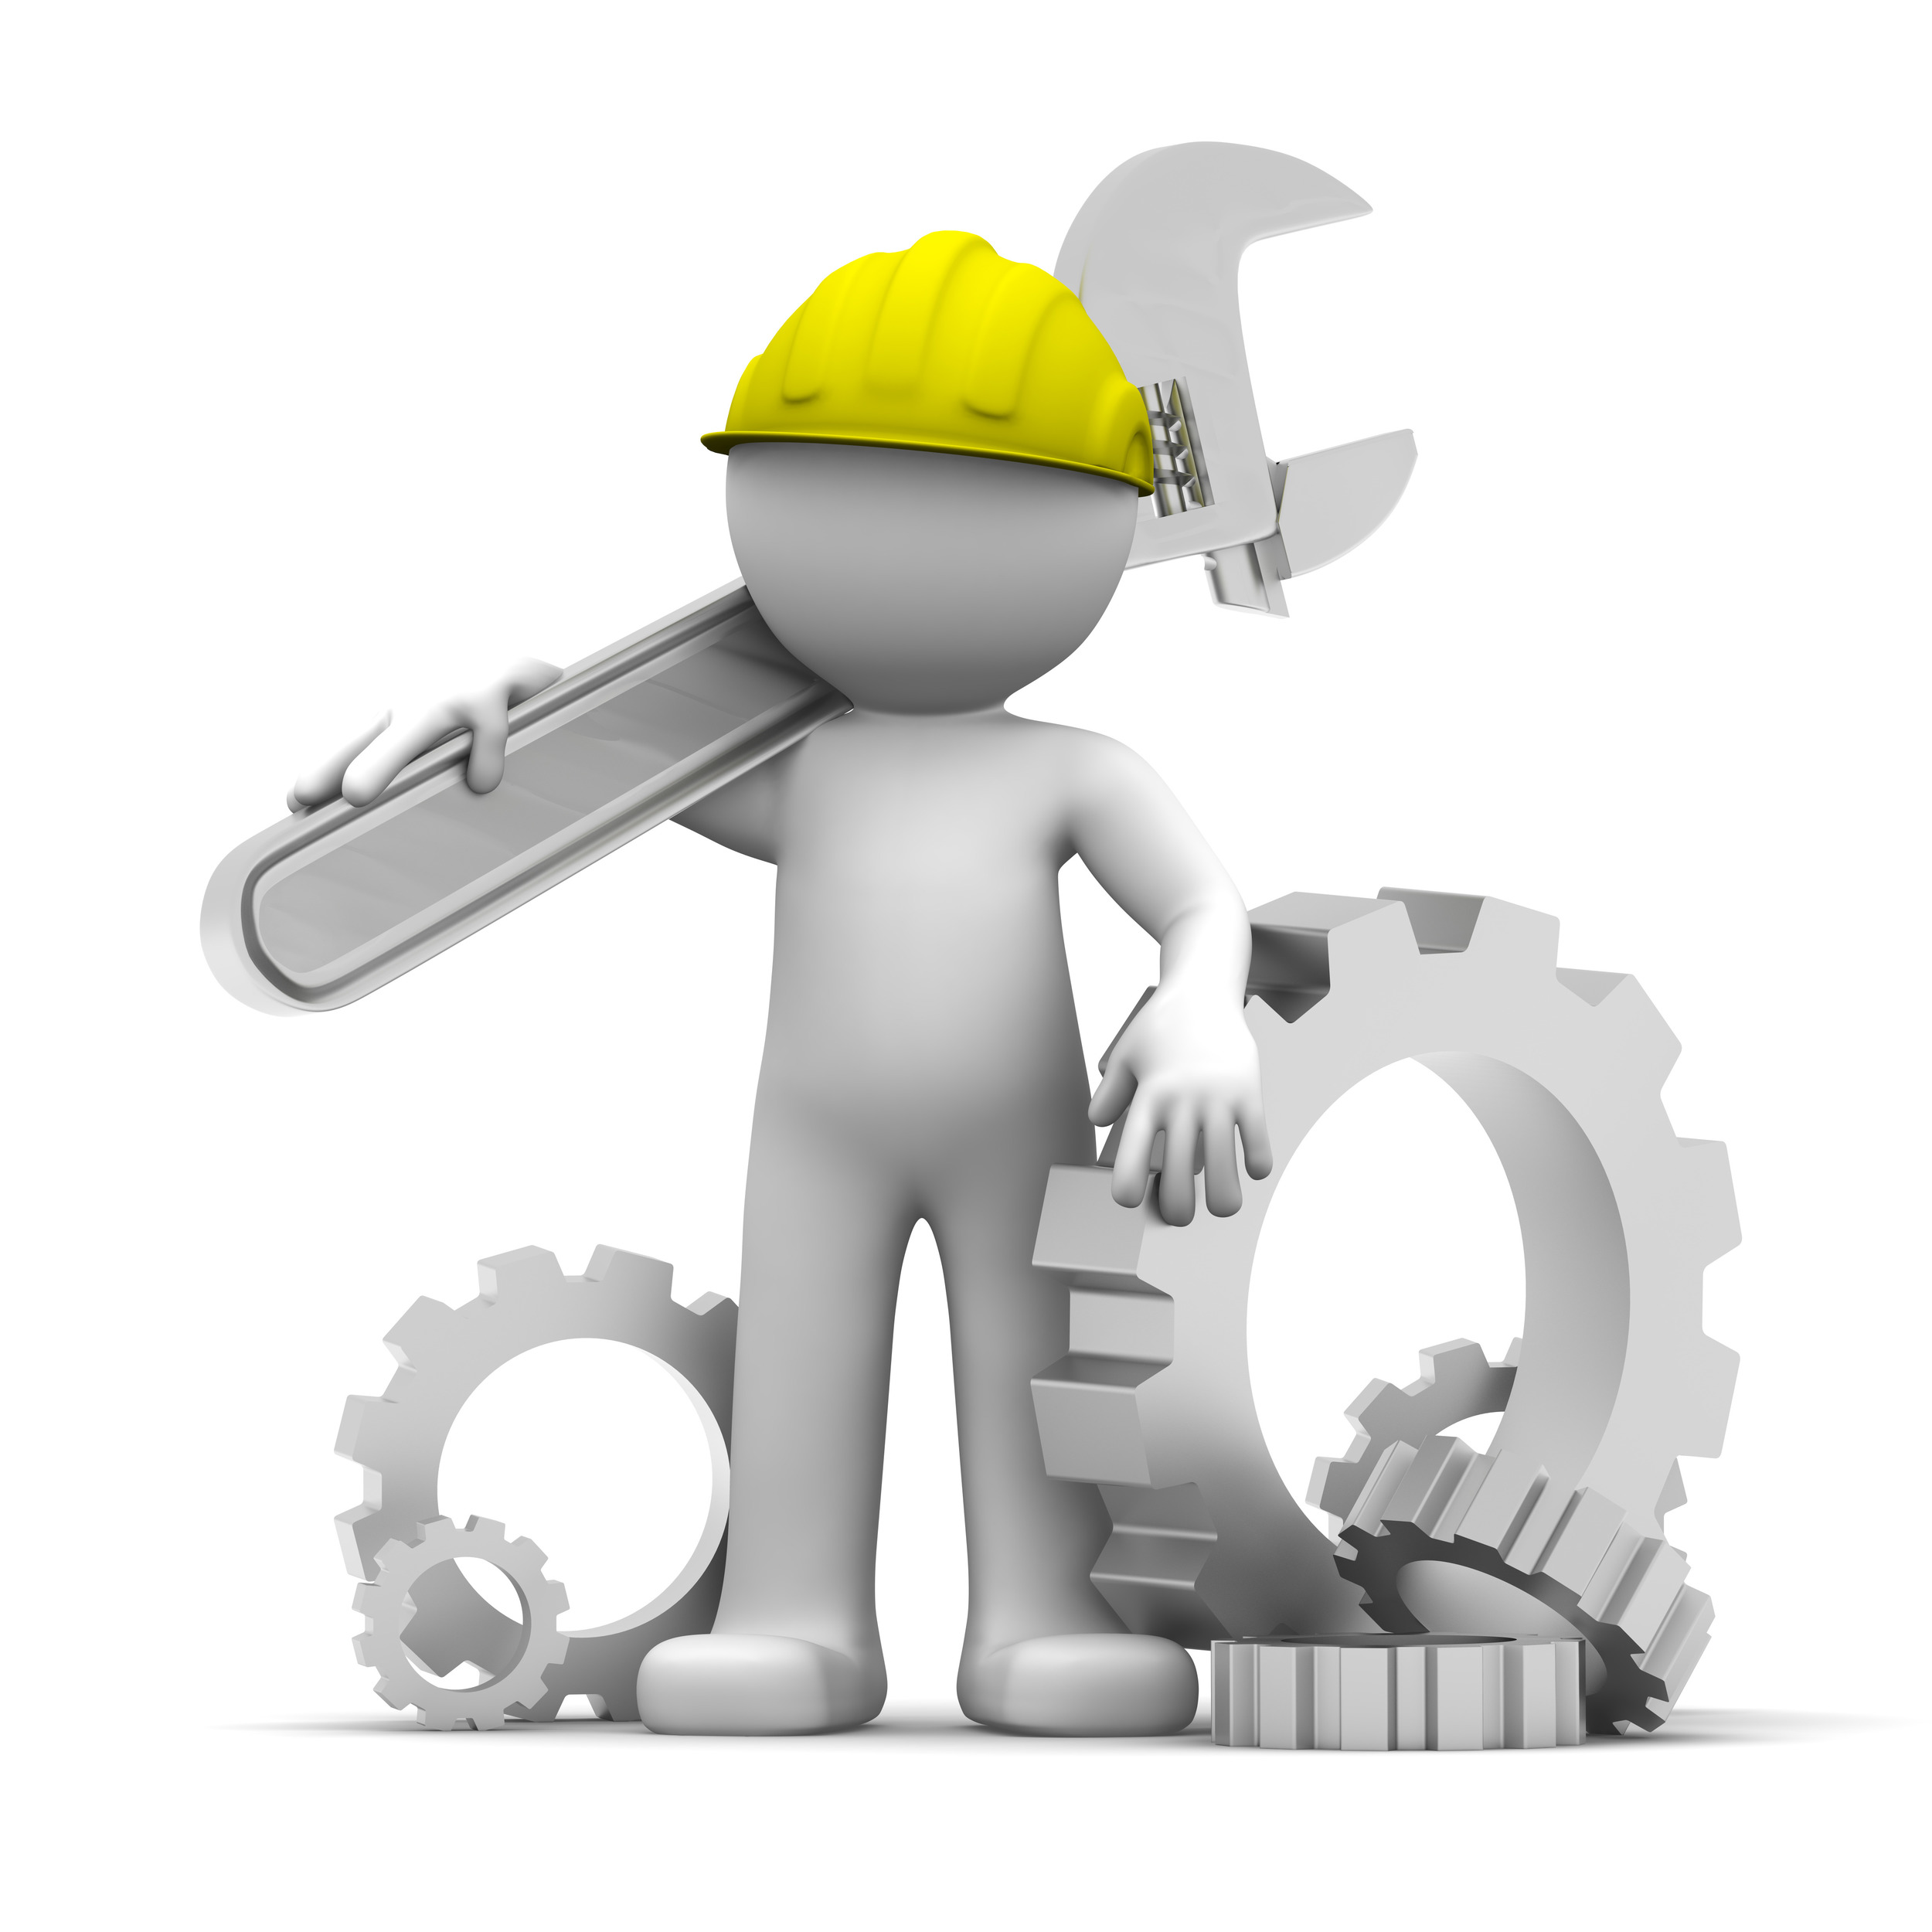 3d-industrial-worker-with-wrench-and-gears-conceptual-illustration_fkEQ72Ru (1)